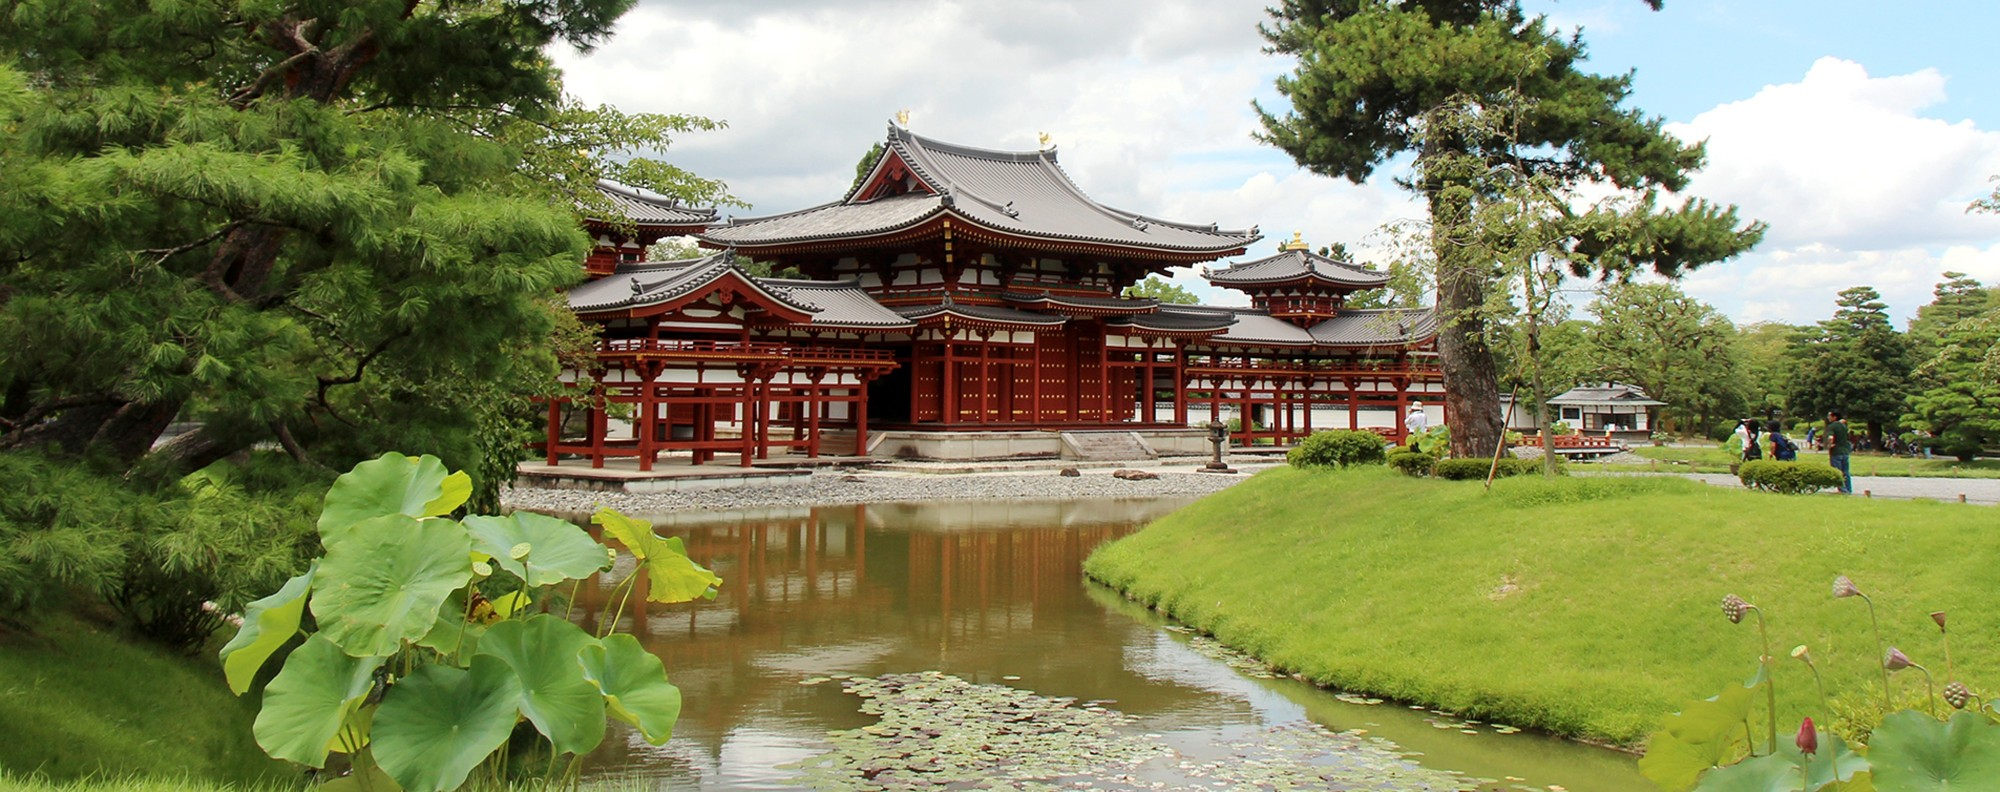 Kyoto's Byodo-in temple. Photo: The Washington Post